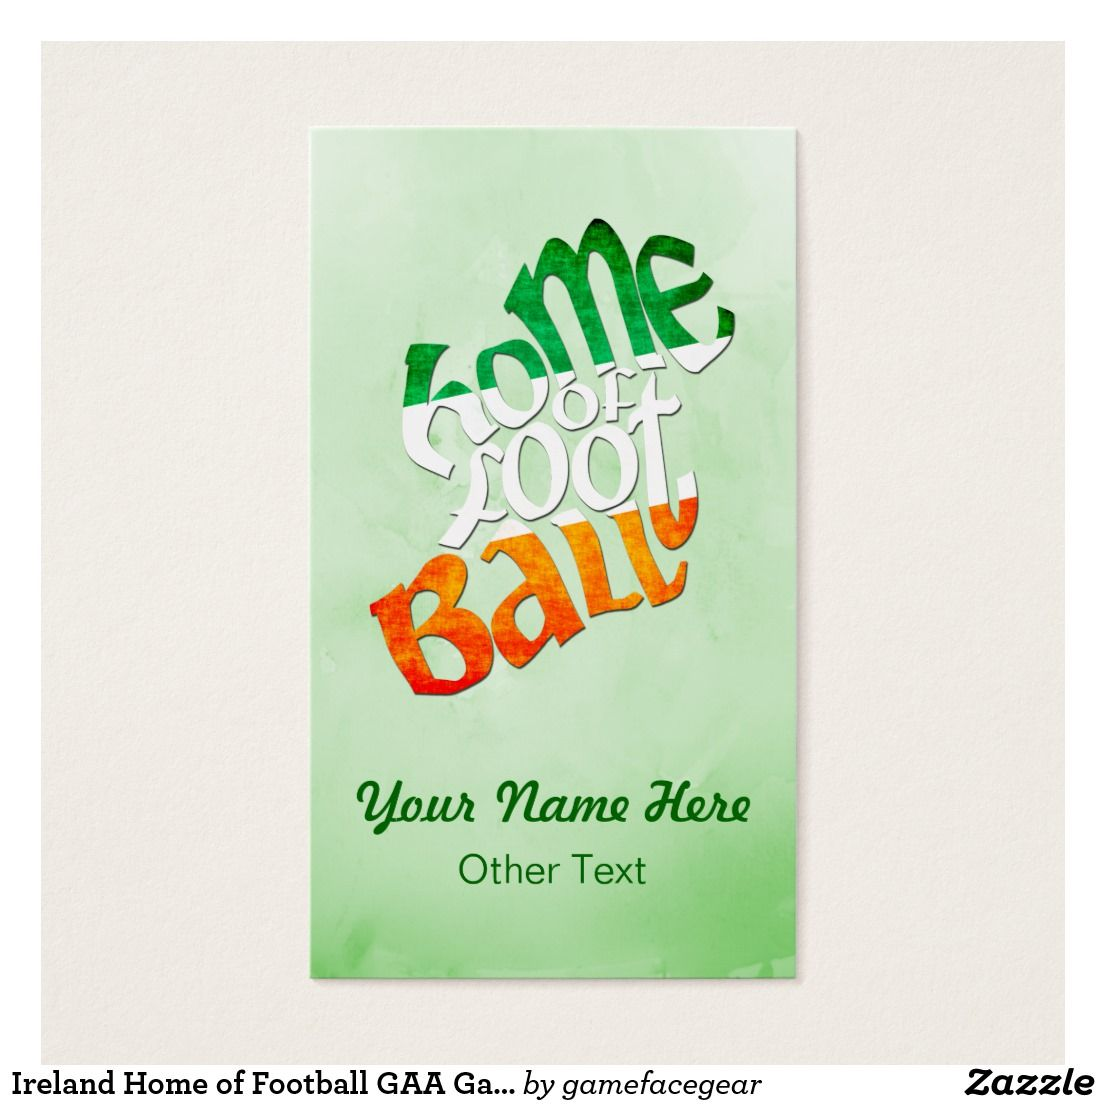 Ireland home of football gaa gaelic business cards spiffy sports ireland home of football gaa gaelic business cards easy to customize sports business cards use the text boxes to add your own text colourmoves